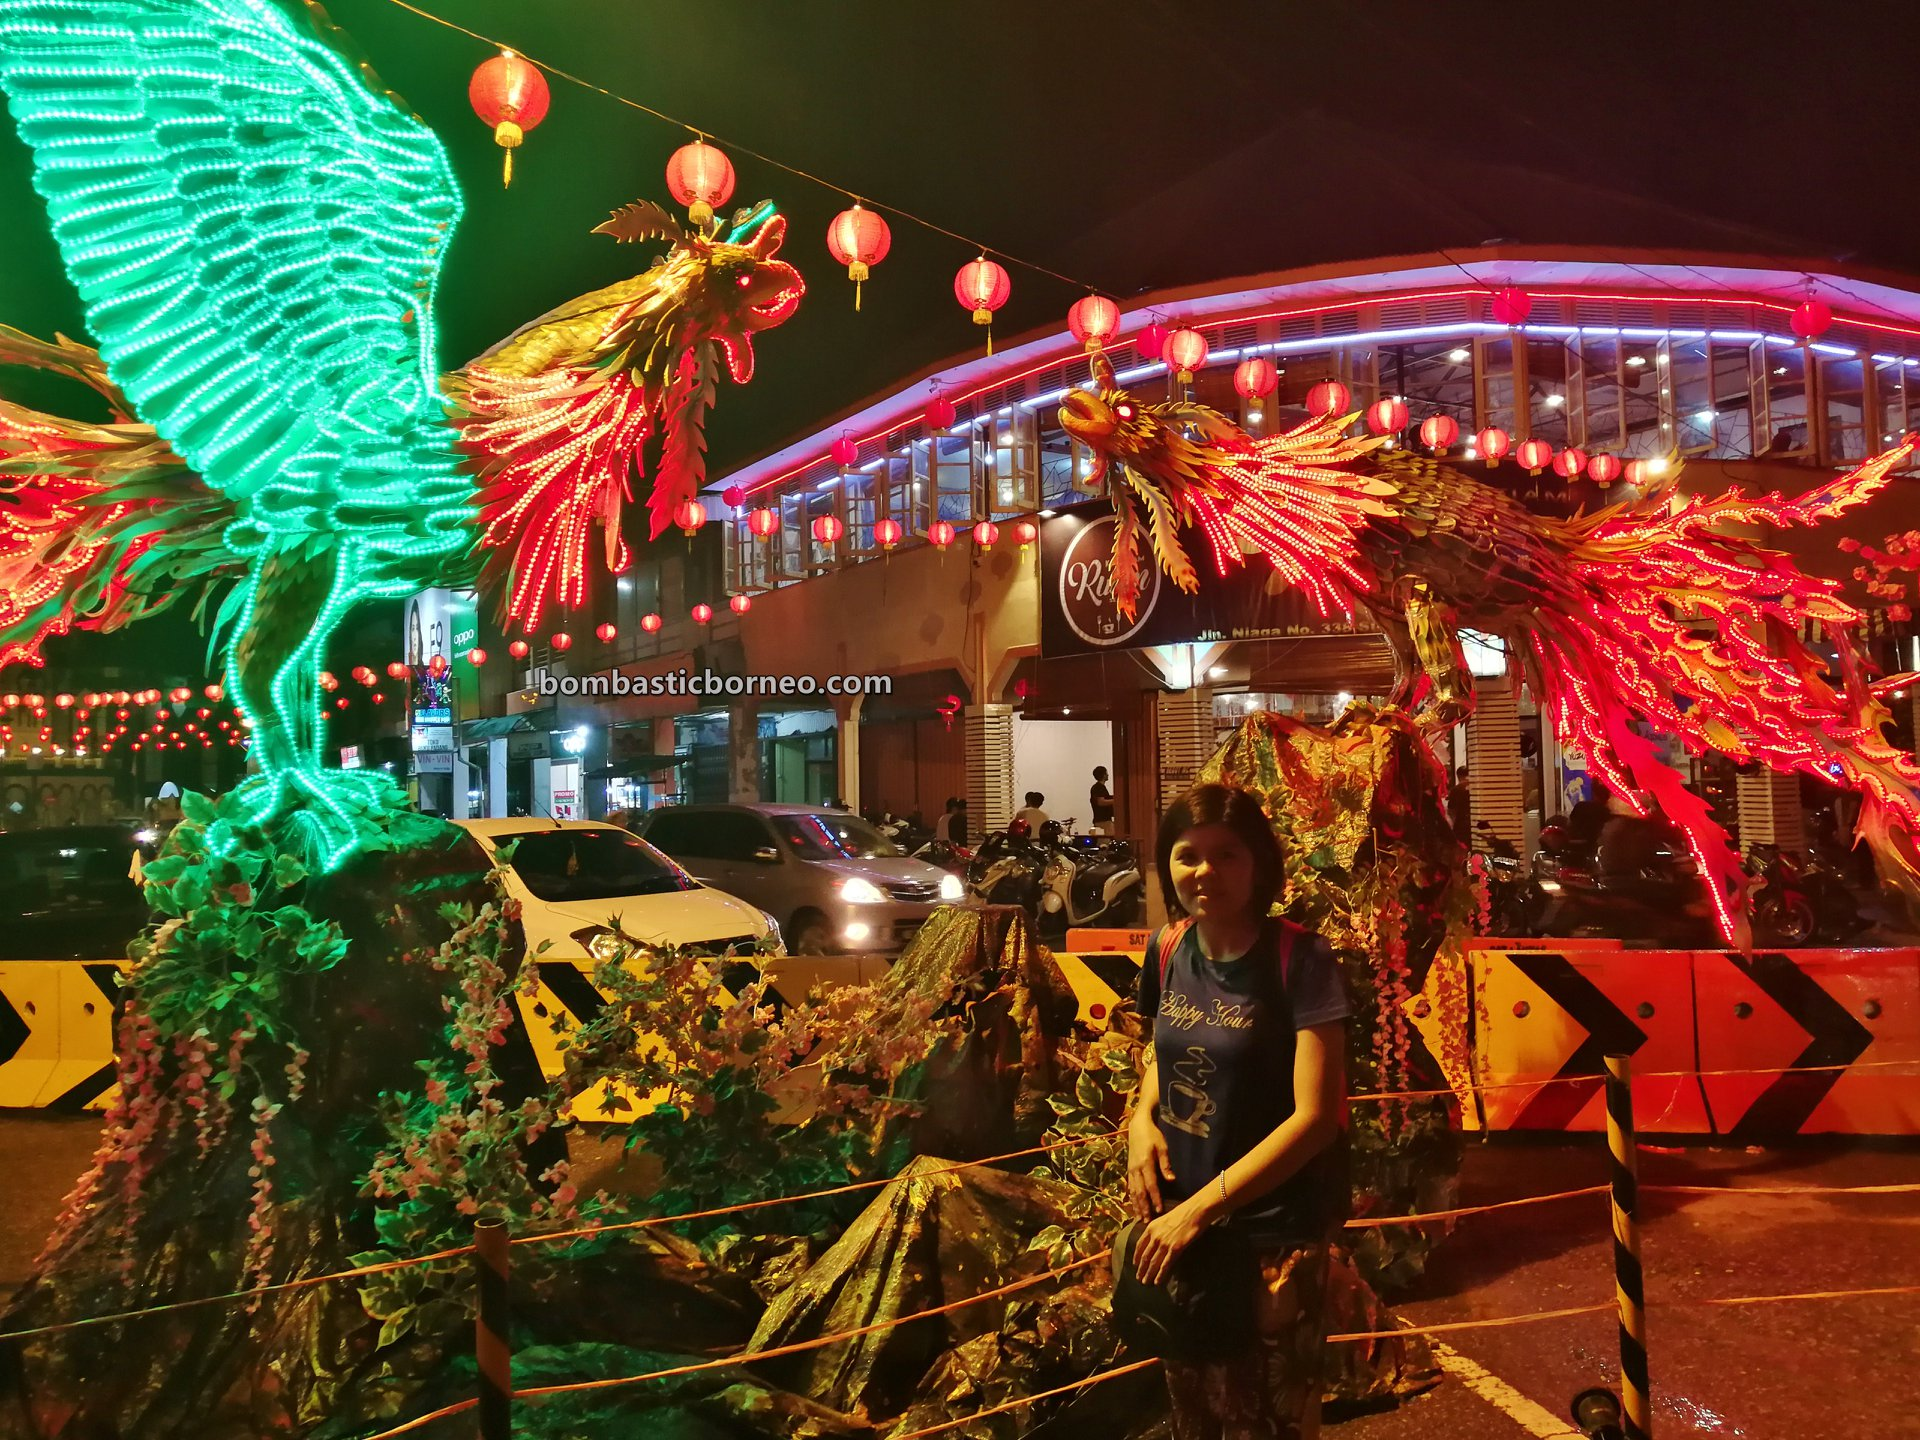 authentic, traditional, culture, Chinese New Year, festival, destination, West Kalimantan, Tourism, tourist attraction, travel guide, Cross Border, Borneo, 婆罗洲华人文化, 印尼西加里曼丹, 山口洋农历新年,